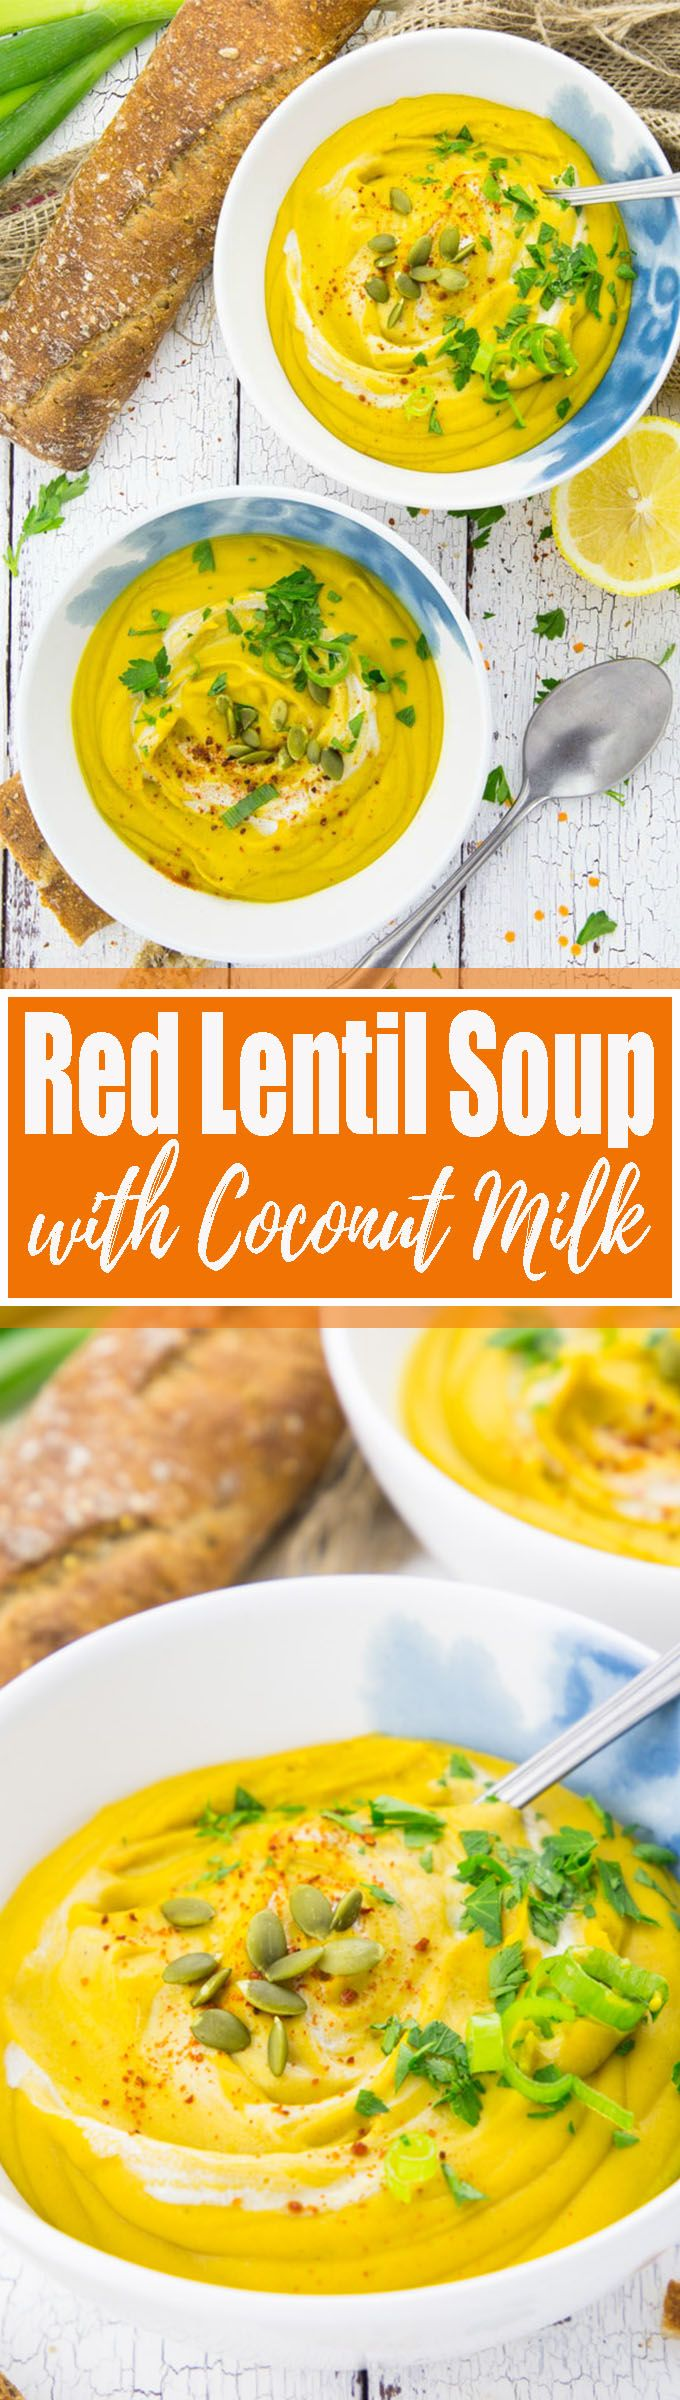 This vegan red lentil soup with coconut milk is perfect for colder fall days. The recipe is super easy and it's packed with protein and vitamins. It makes such an easy vegan dinner or you could even add it to your vegan Thanksgiving recipes! Find more vegan recipes at veganheaven.org <3